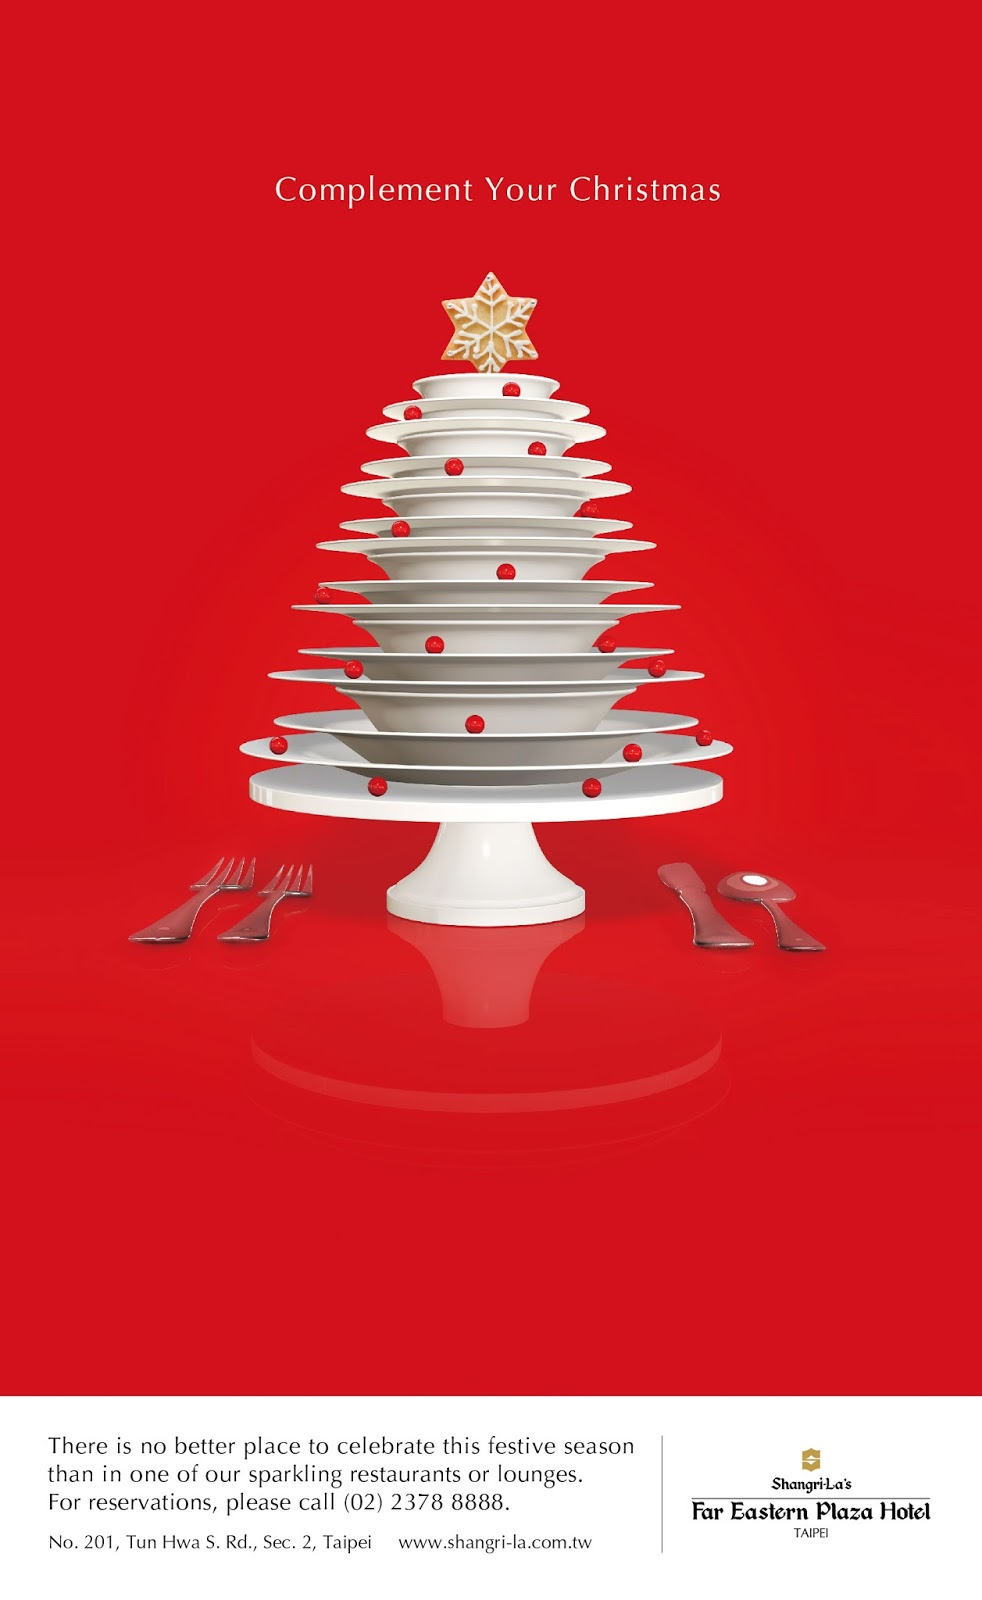 15 Clever Christmas Tree Advertisements | Smashcave